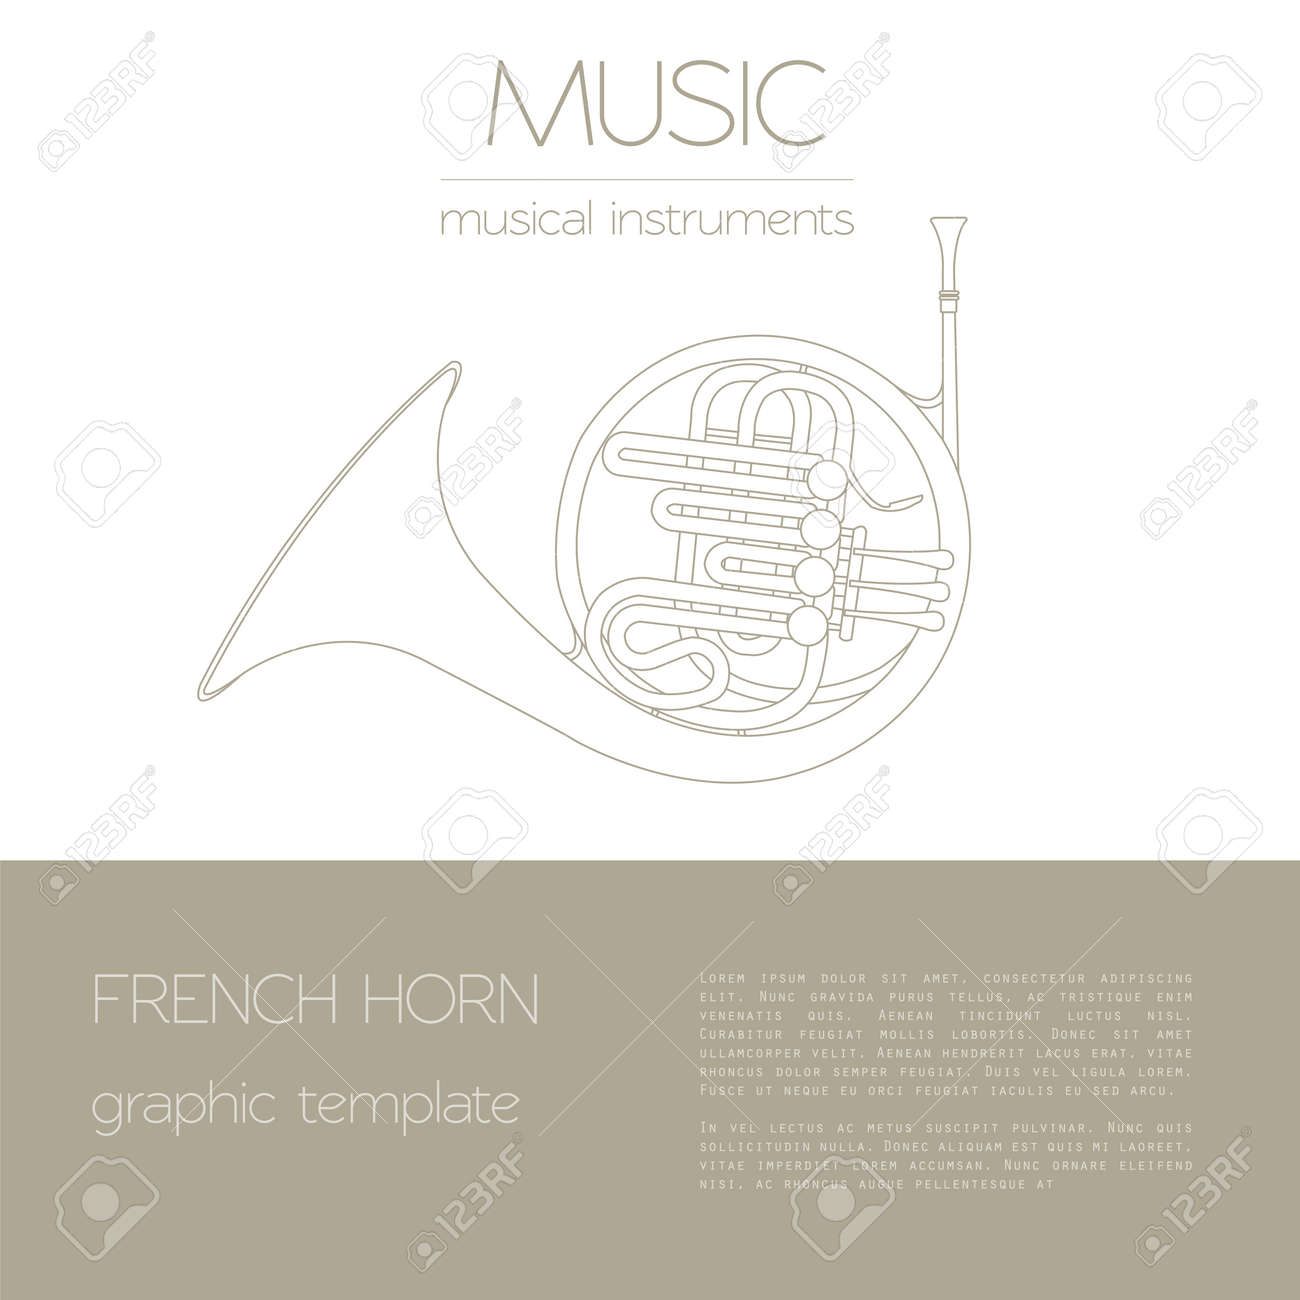 hight resolution of musical instruments graphic template french horn vector illustration stock vector 47951810